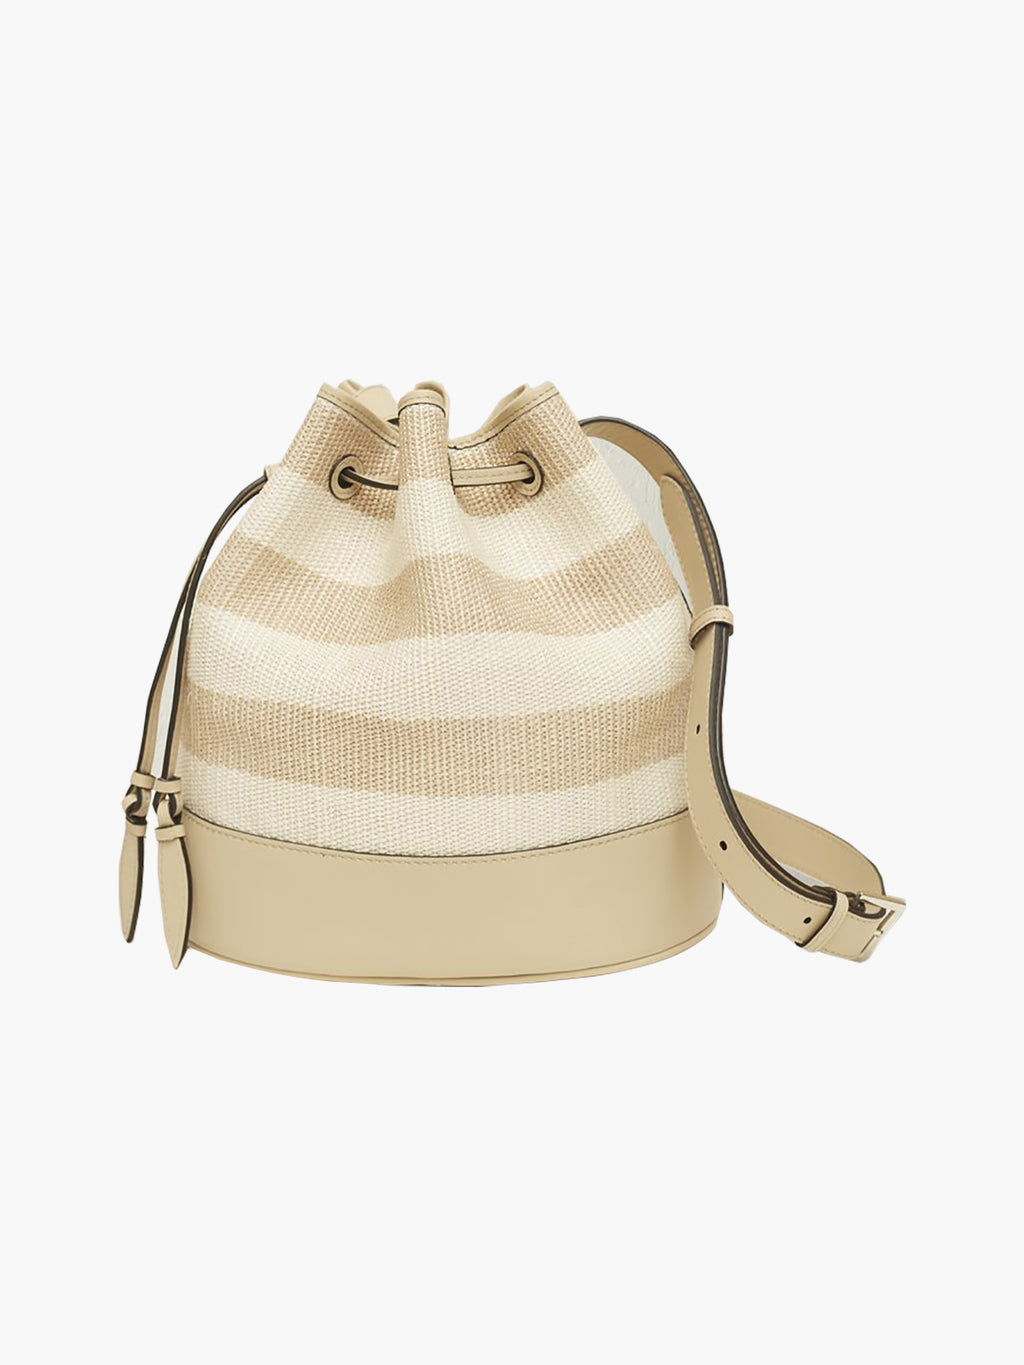 Woven Large Drawstring Bag | Oyster Stripe